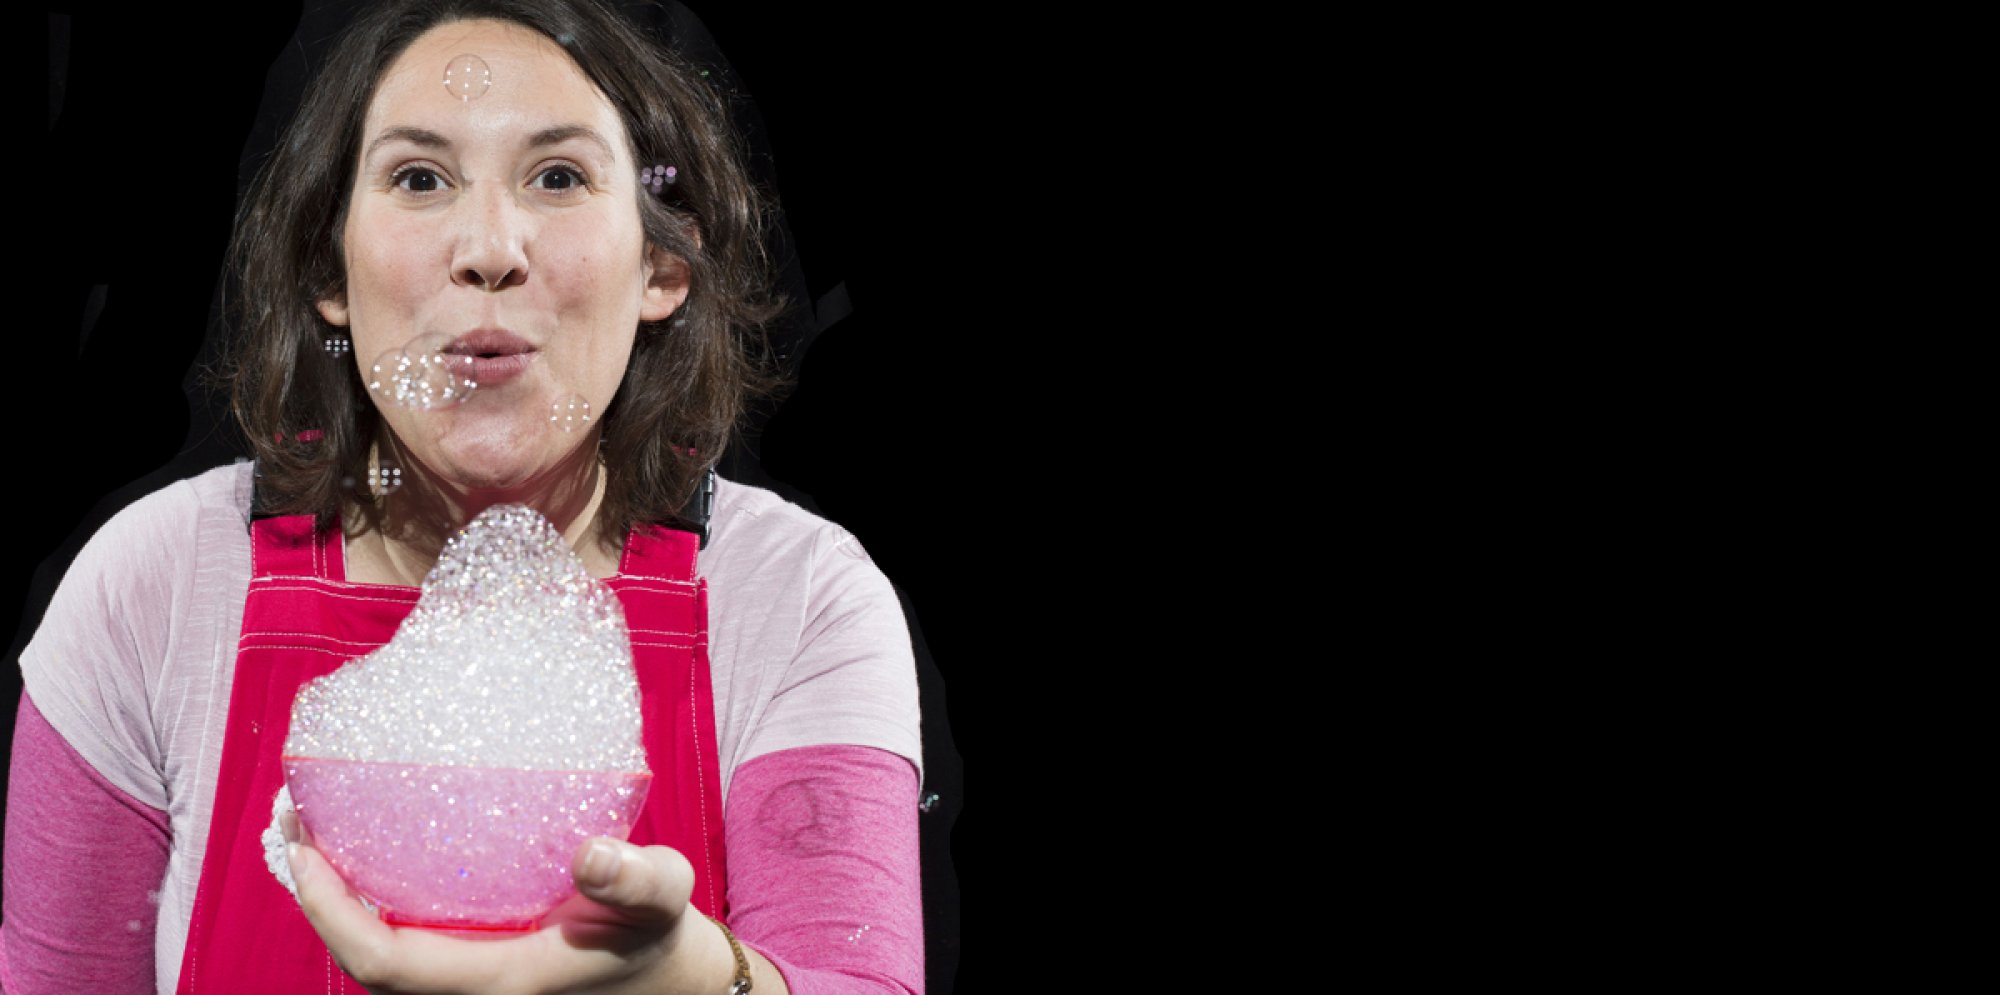 Inside: a person is to the left wearing pink with short brown hair, holding a bowl with bubbles in. They are blowing it